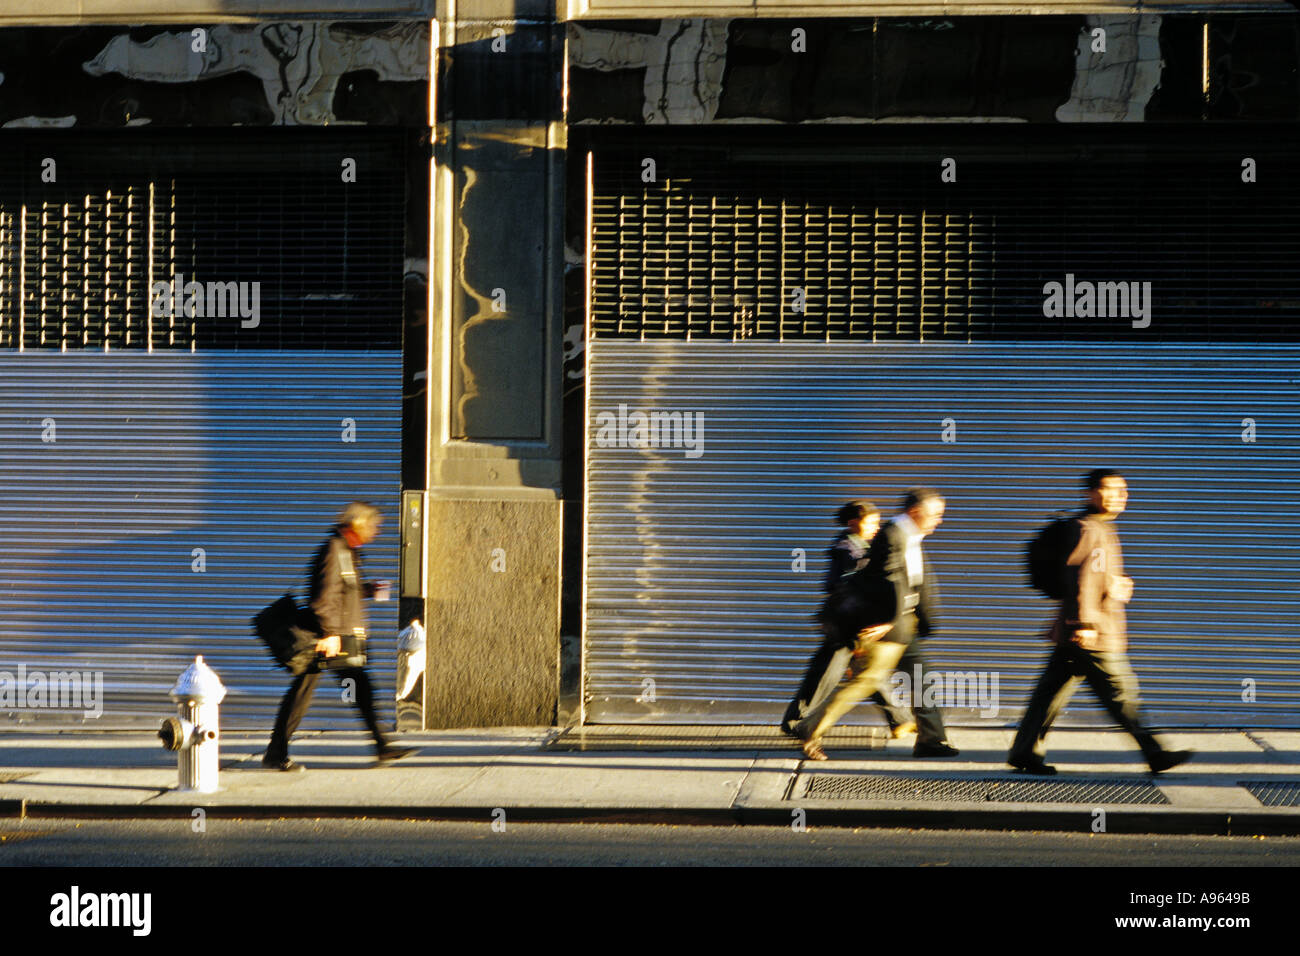 people walking to work in early morning light on th street people walking to work in early morning light on 39th street midtown manhattan new york ny